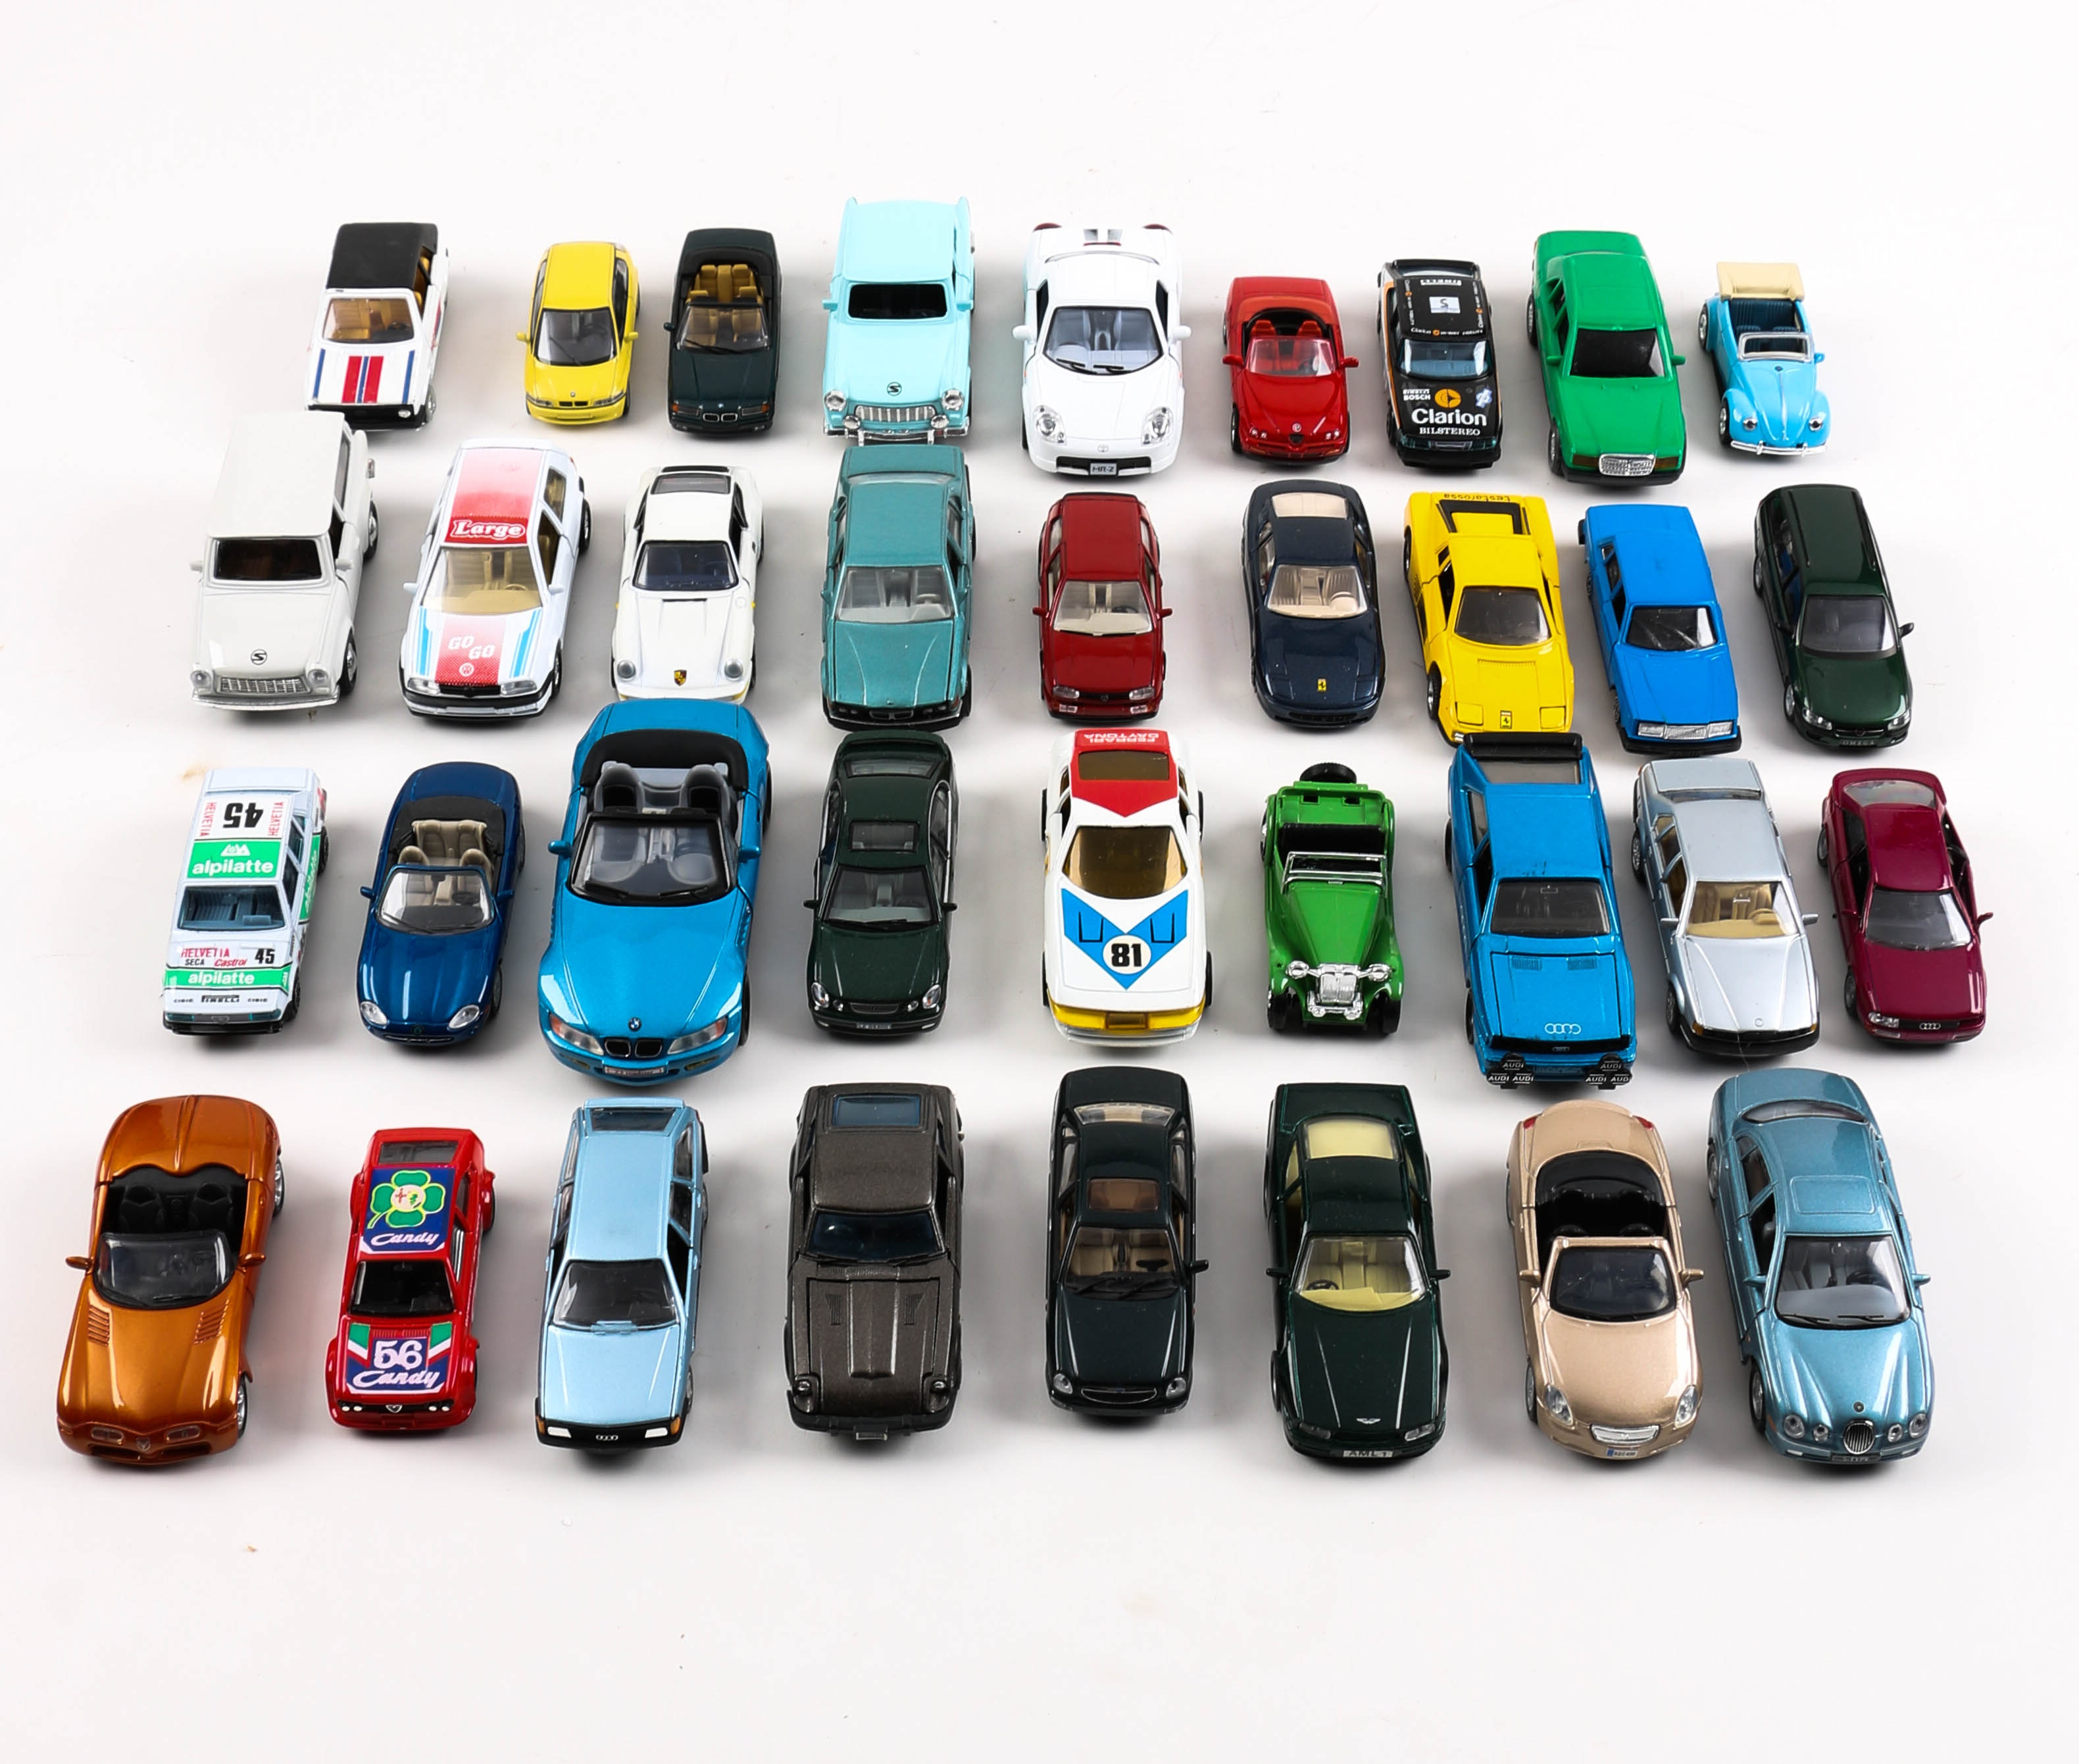 Assortment of European Die-Cast Toy Cars